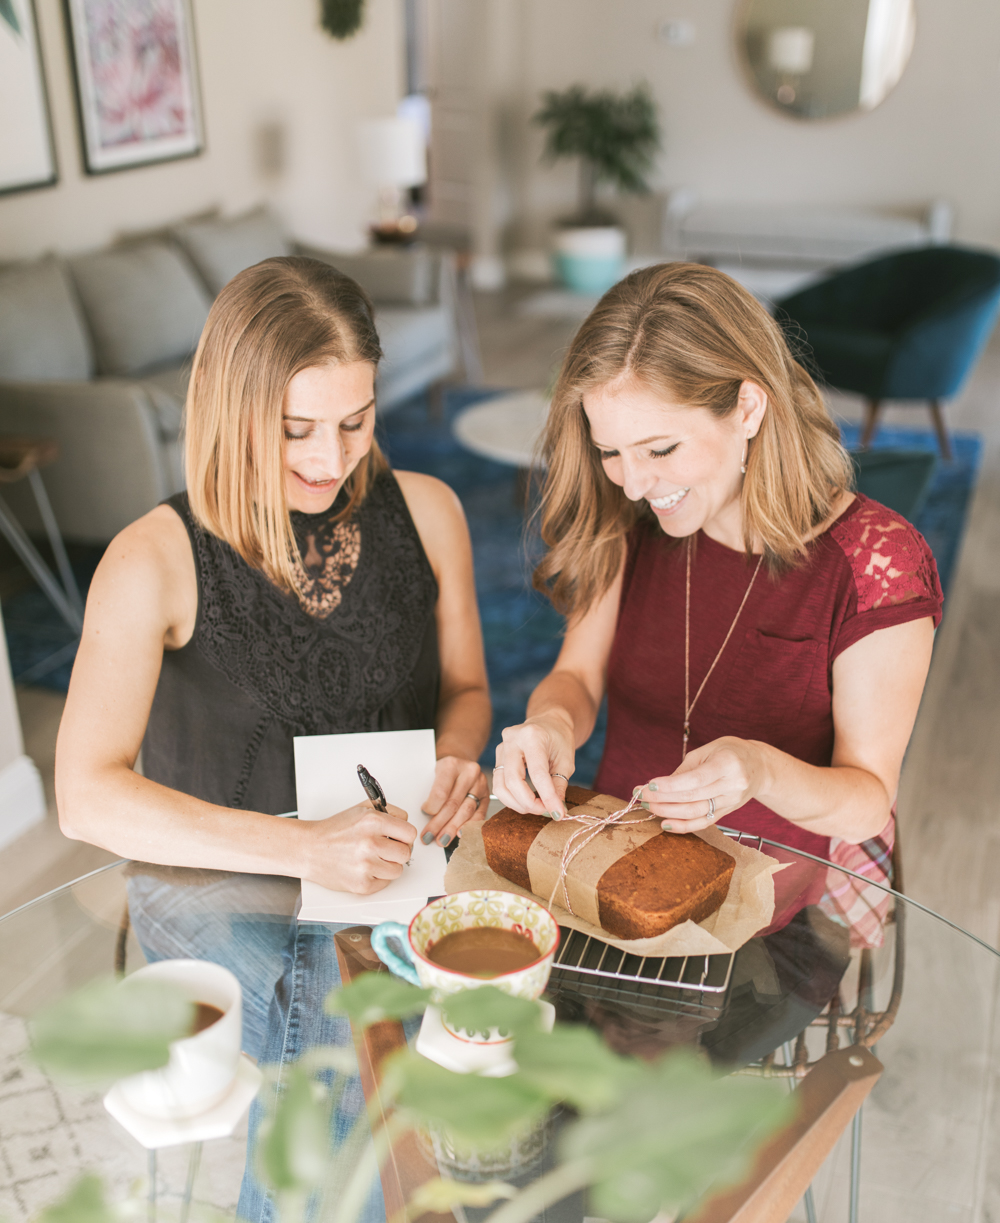 Vegan Gift Ideas | Michelle Cehn & Kristie Middleton Wrapping Homemade Pumpkin Bread & Writing Holiday Cards | WorldofVegan.com | #diy #vegan #holiday #gifts